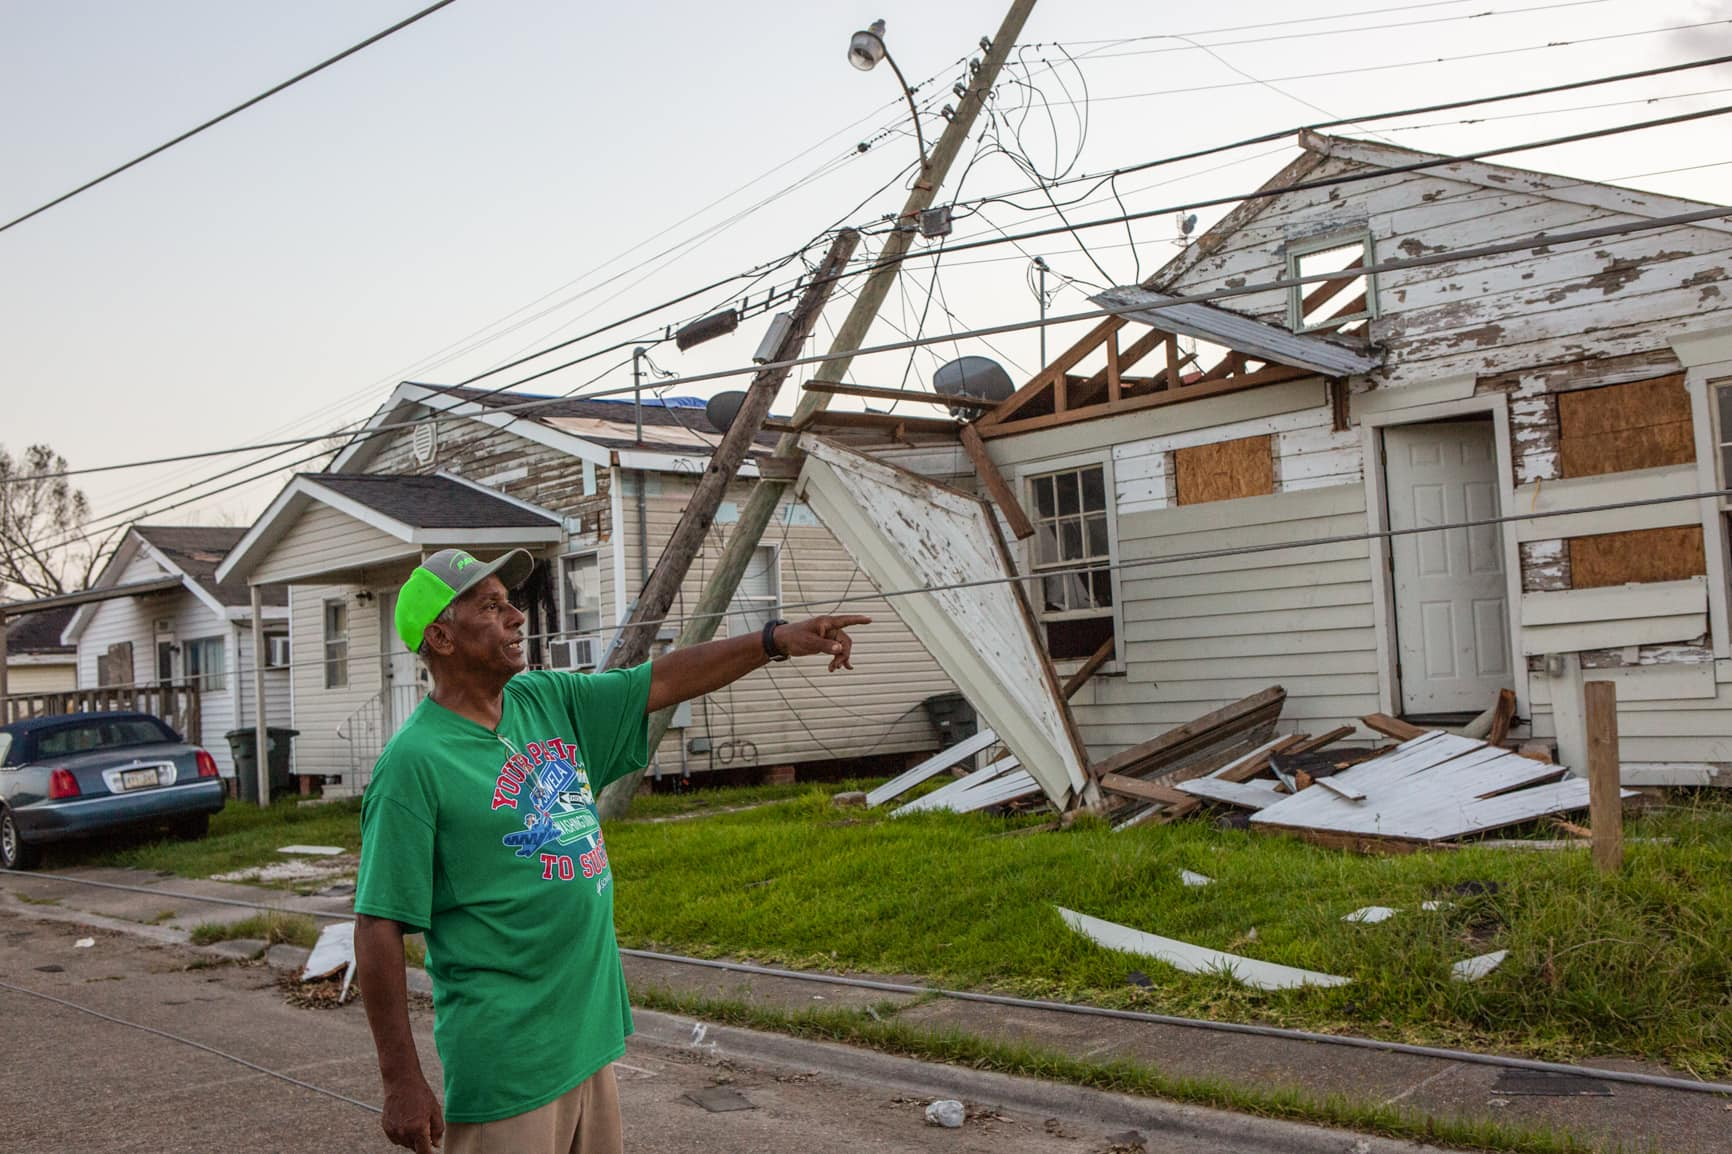 Michael H. Captain Sr. points to the damage created by Hurricane Laura on his street with damaged houses and a down telephone pole behind him.